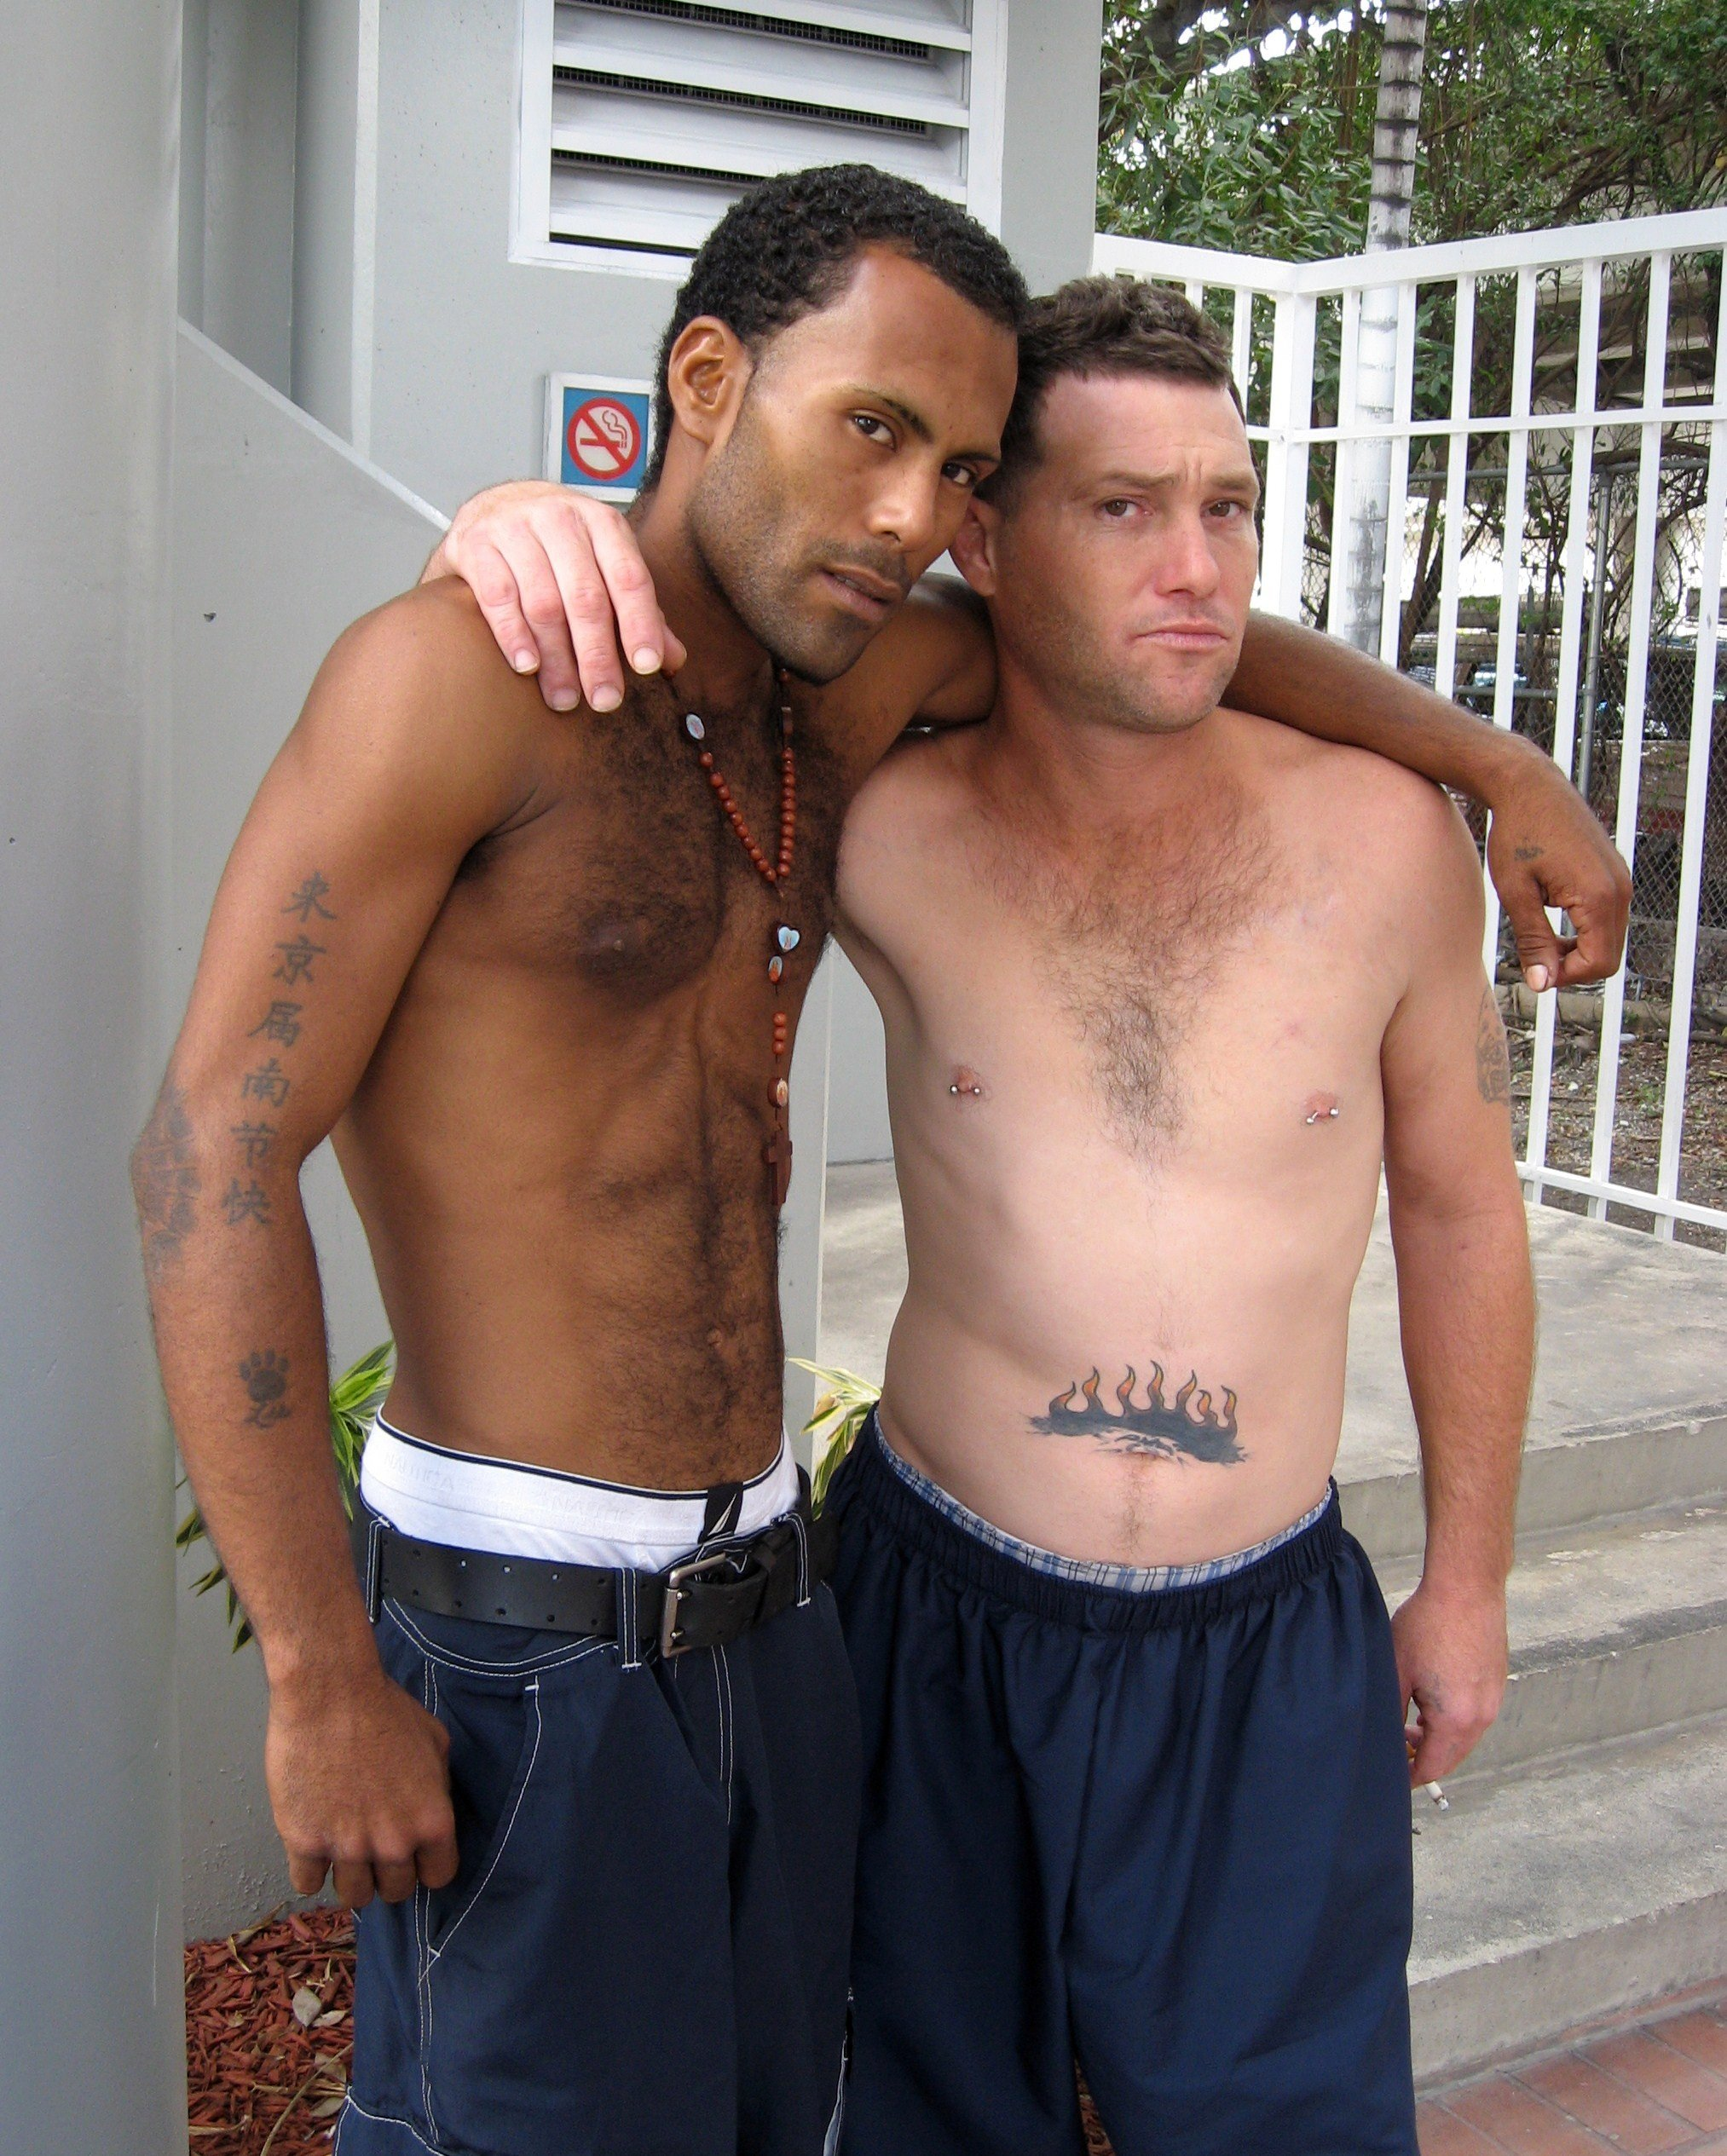 File:Miguel and Jose's Tattoos.jpg - Wikimedia Commons